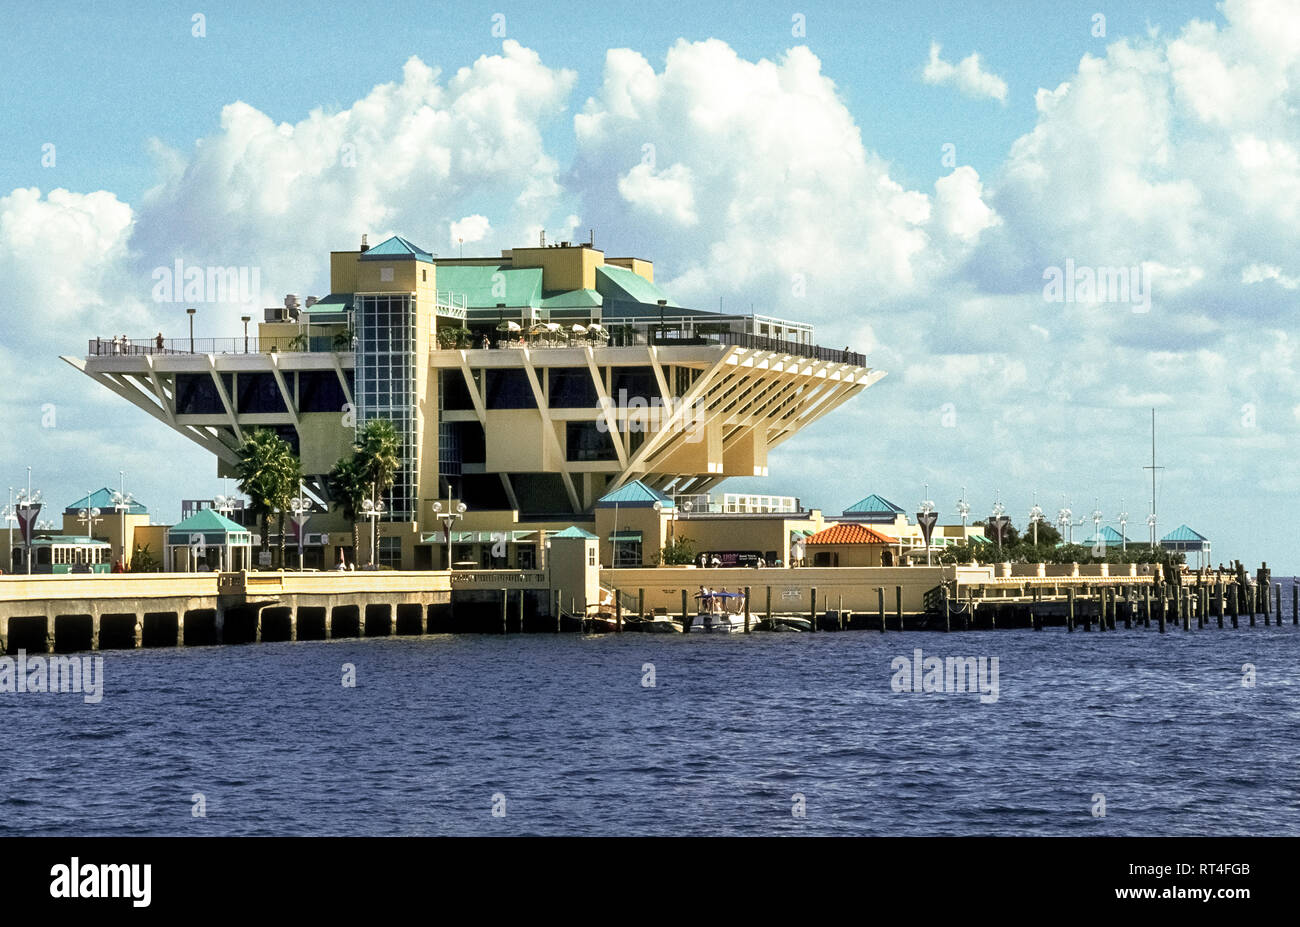 This is an historical photograph of The St. Petersburg Pier, a landmark pleasure pier extending into Tampa Bay from downtown St. Petersburg on the Gulf Coast of Florida, USA. With its novel architectural design of an inverted pyramid, The Pier opened in 1973 but was demolished in 2015 after deteriorating over the years. Construction began soon after on a new $76 million-dollar Pier Park that extends 3,065 feet (934 meters) into the bay and ends with a contemporary four-story Pier Head building featuring a restaurant, gift and bait shop, café and rooftop bar. - Stock Image